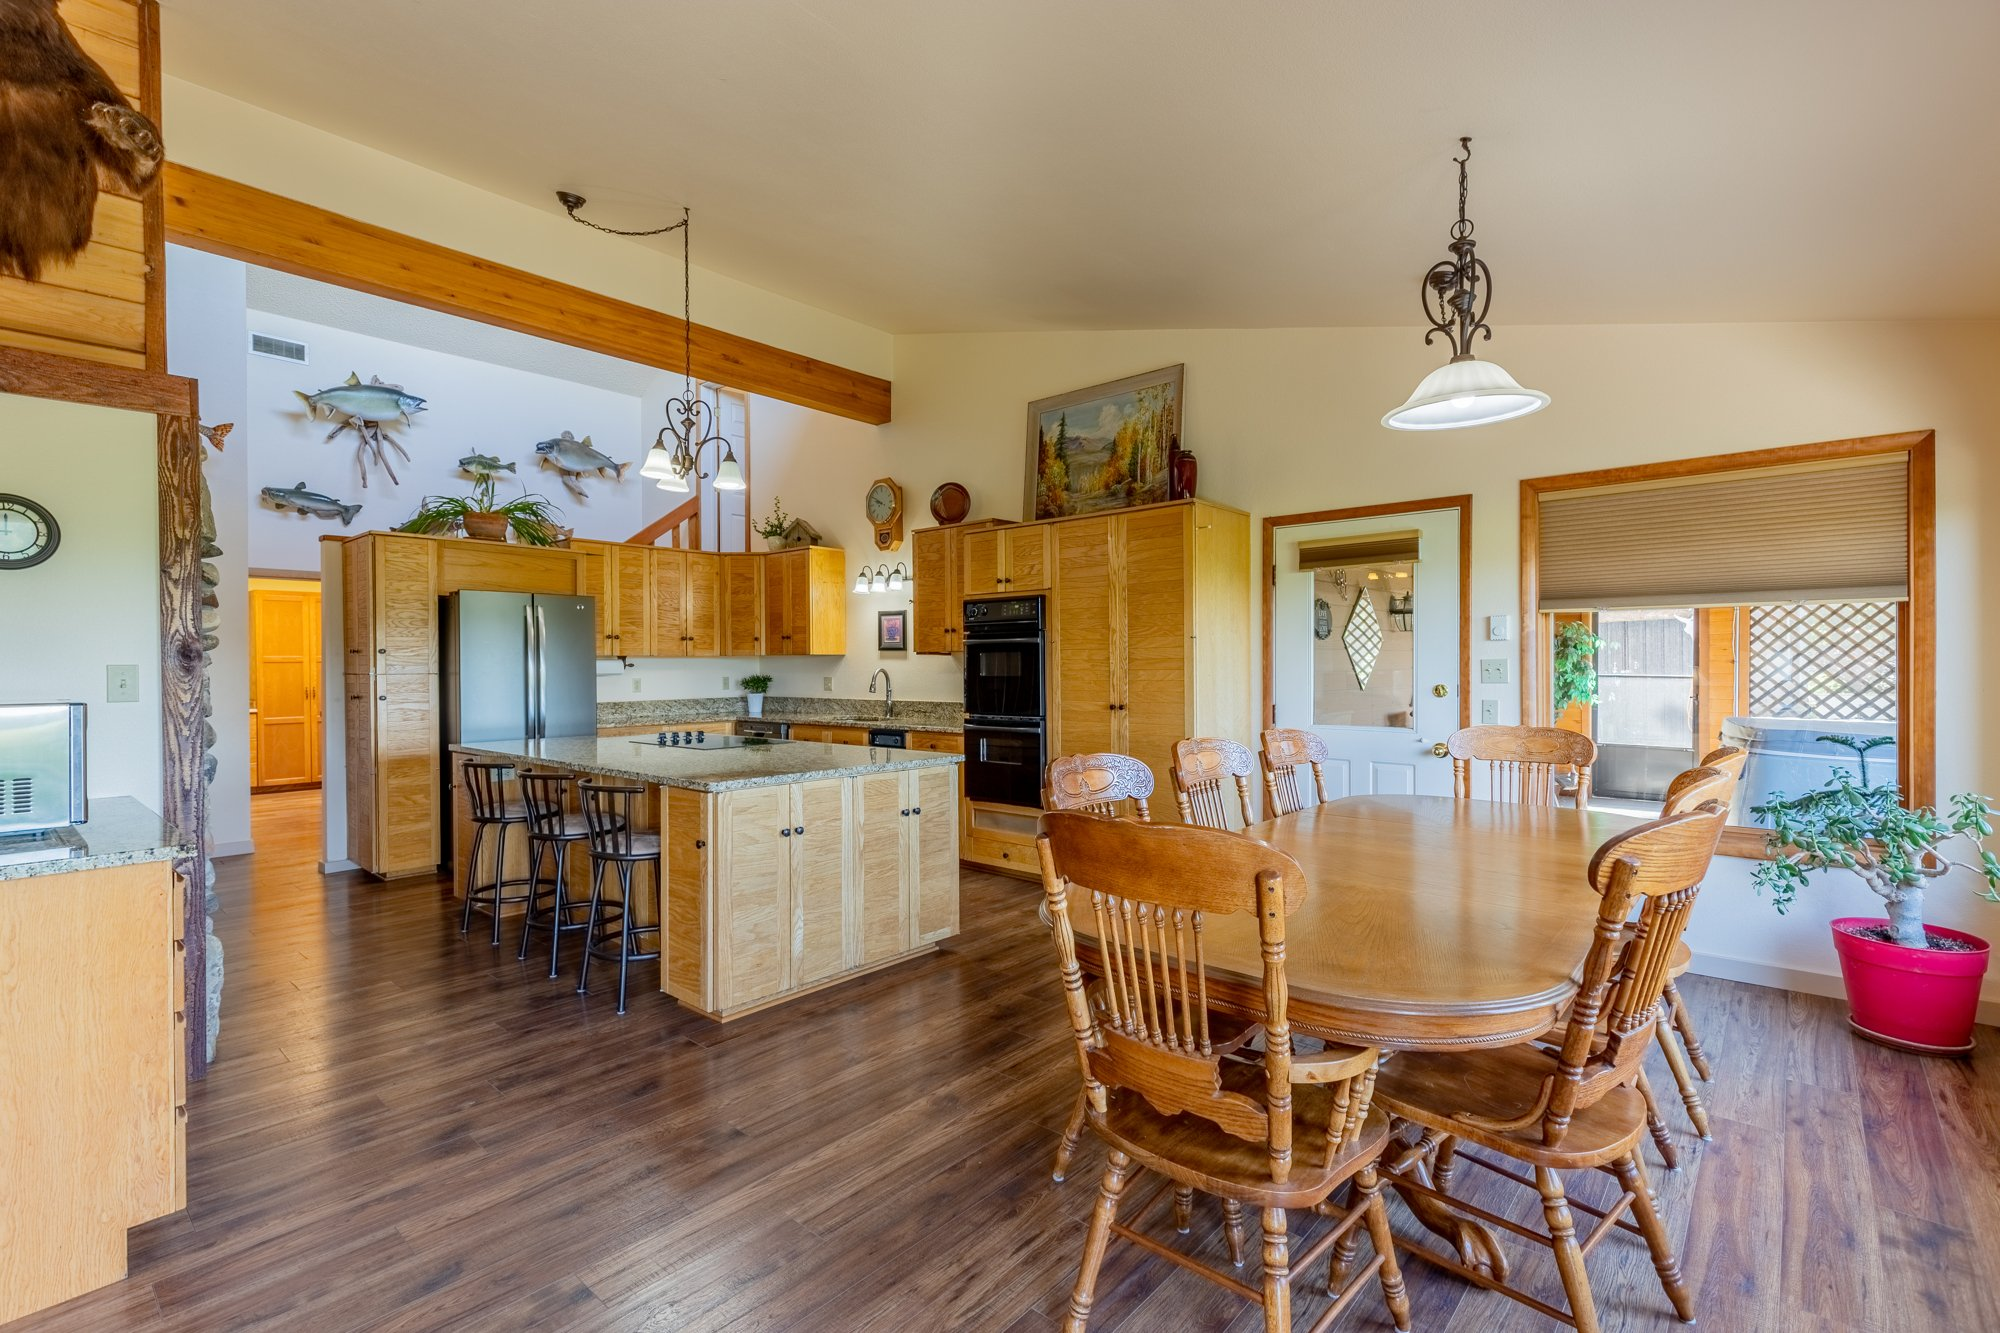 Open Kitchen and Dining - 17777 6650 Rd Montrose, CO 81403 - Atha Team Country Real Estate